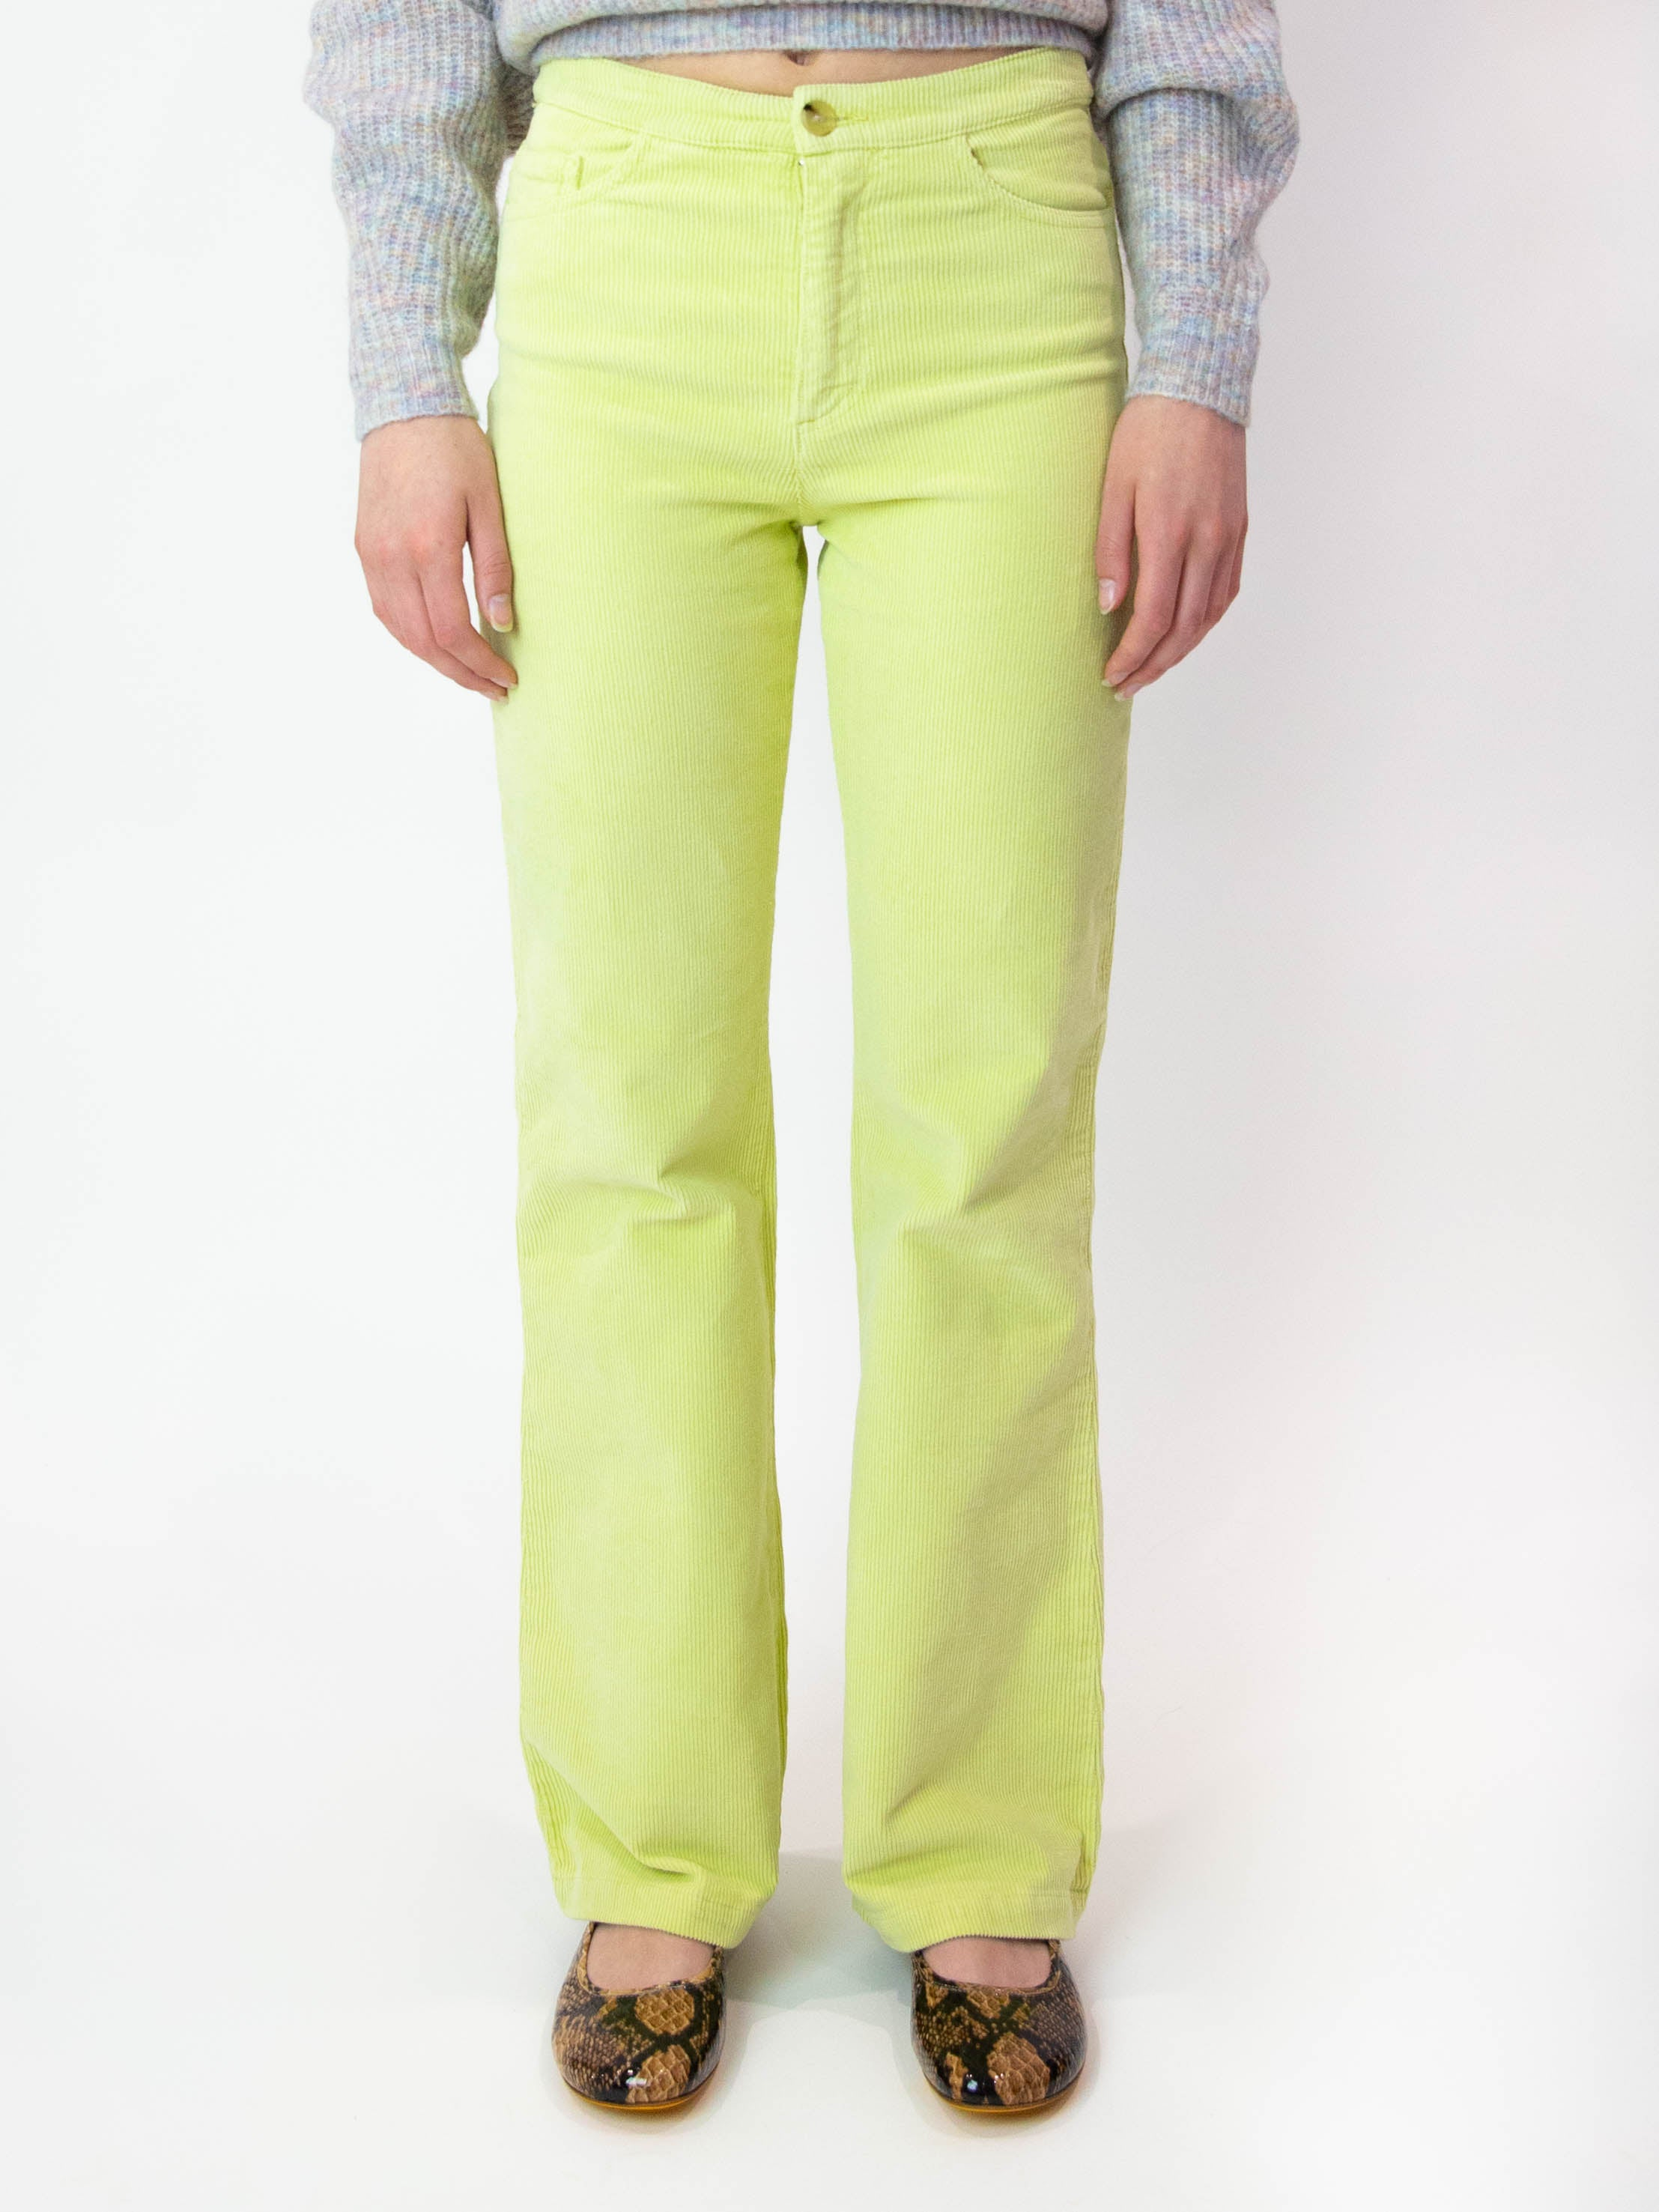 Milton Corduroy High-Waisted Pants - Light Olive